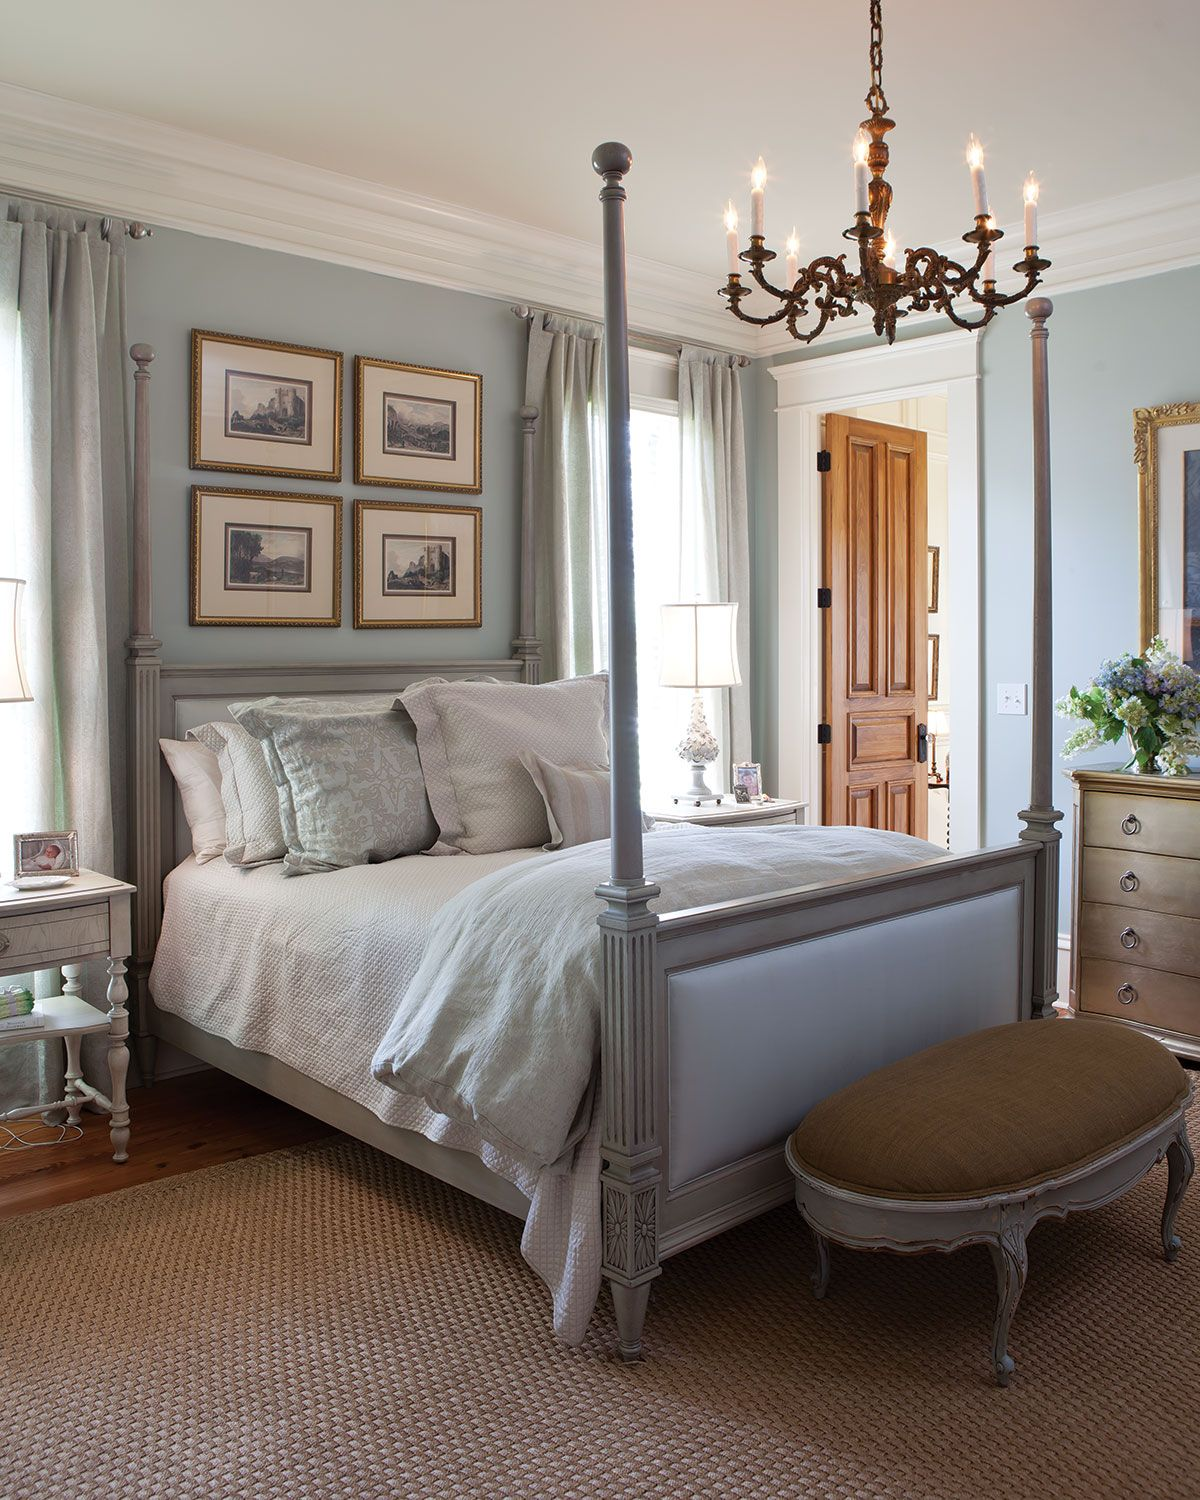 21 Master Bedroom Interior Designs Decorating Ideas: 10 Dreamy Southern Bedrooms